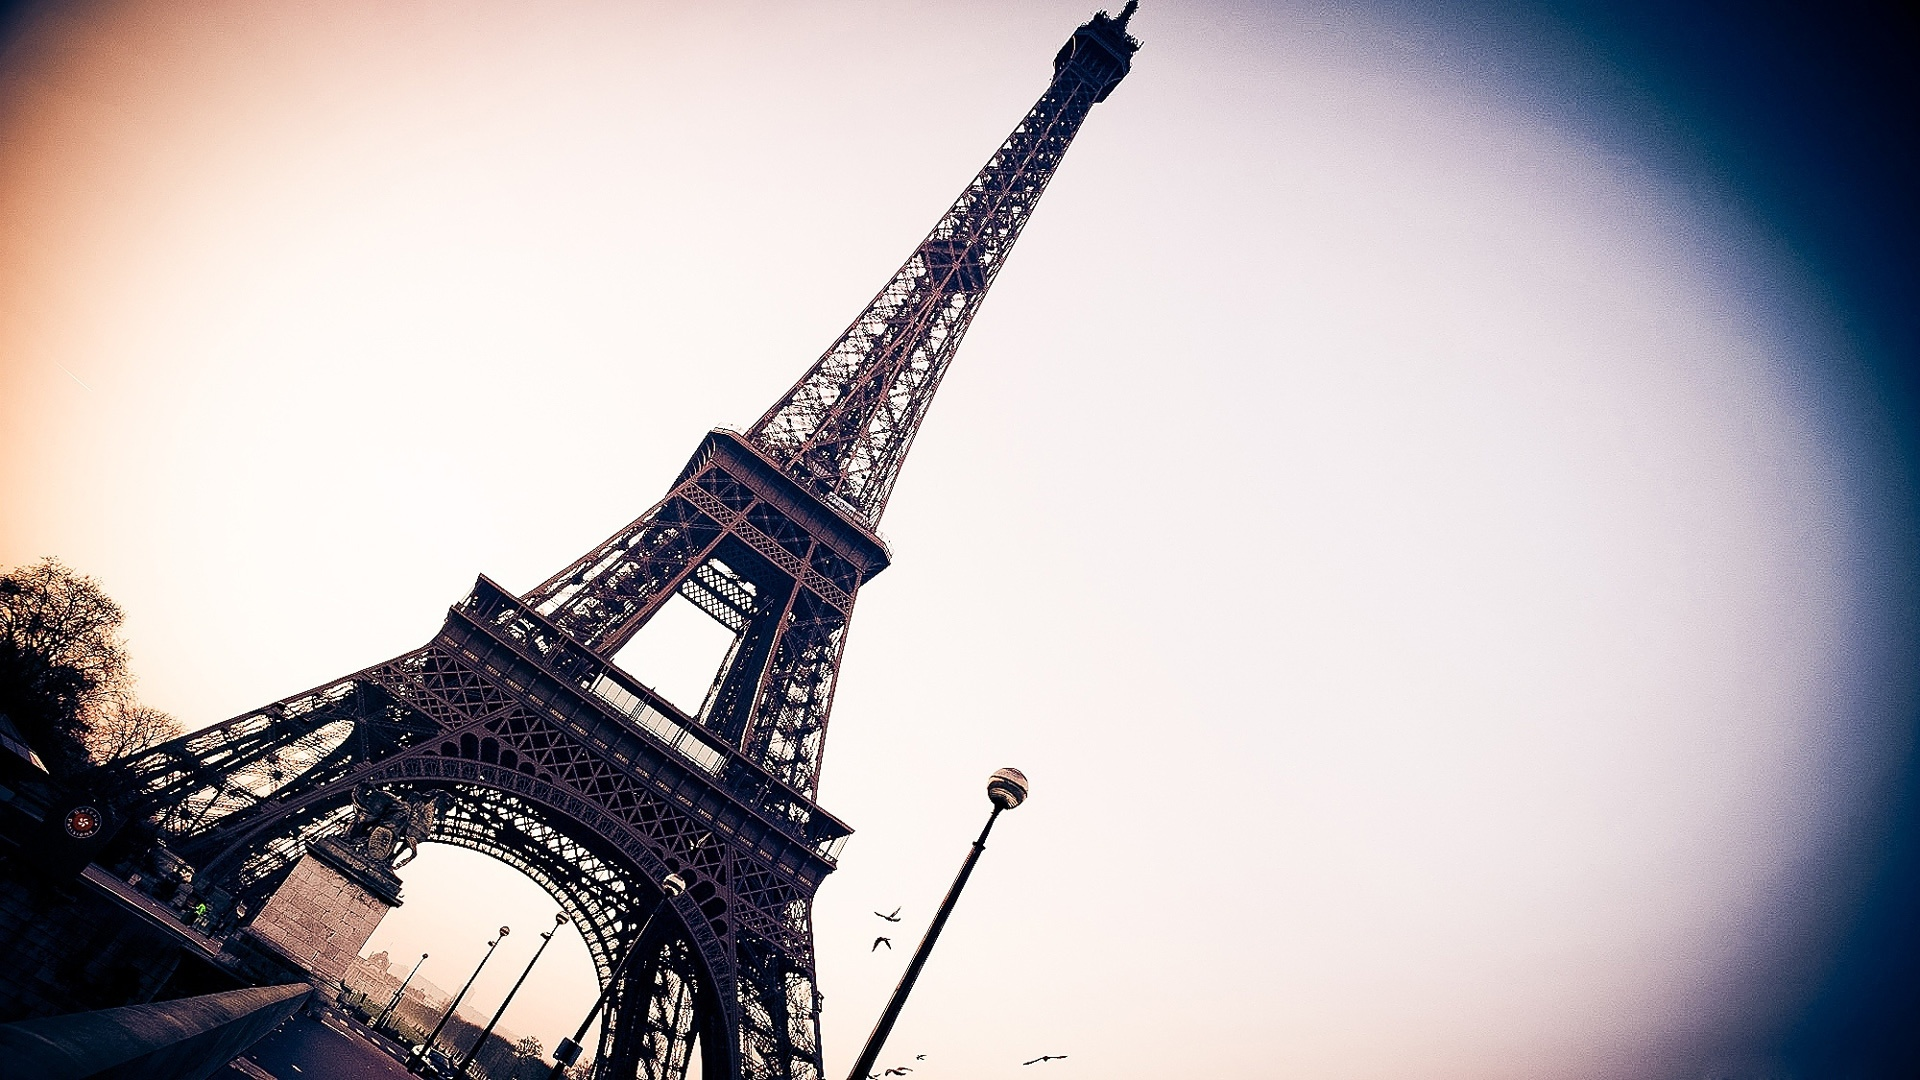 Wallpaper Eiffel Tower Paris France 1920x1080 Full Hd 2k Picture Image